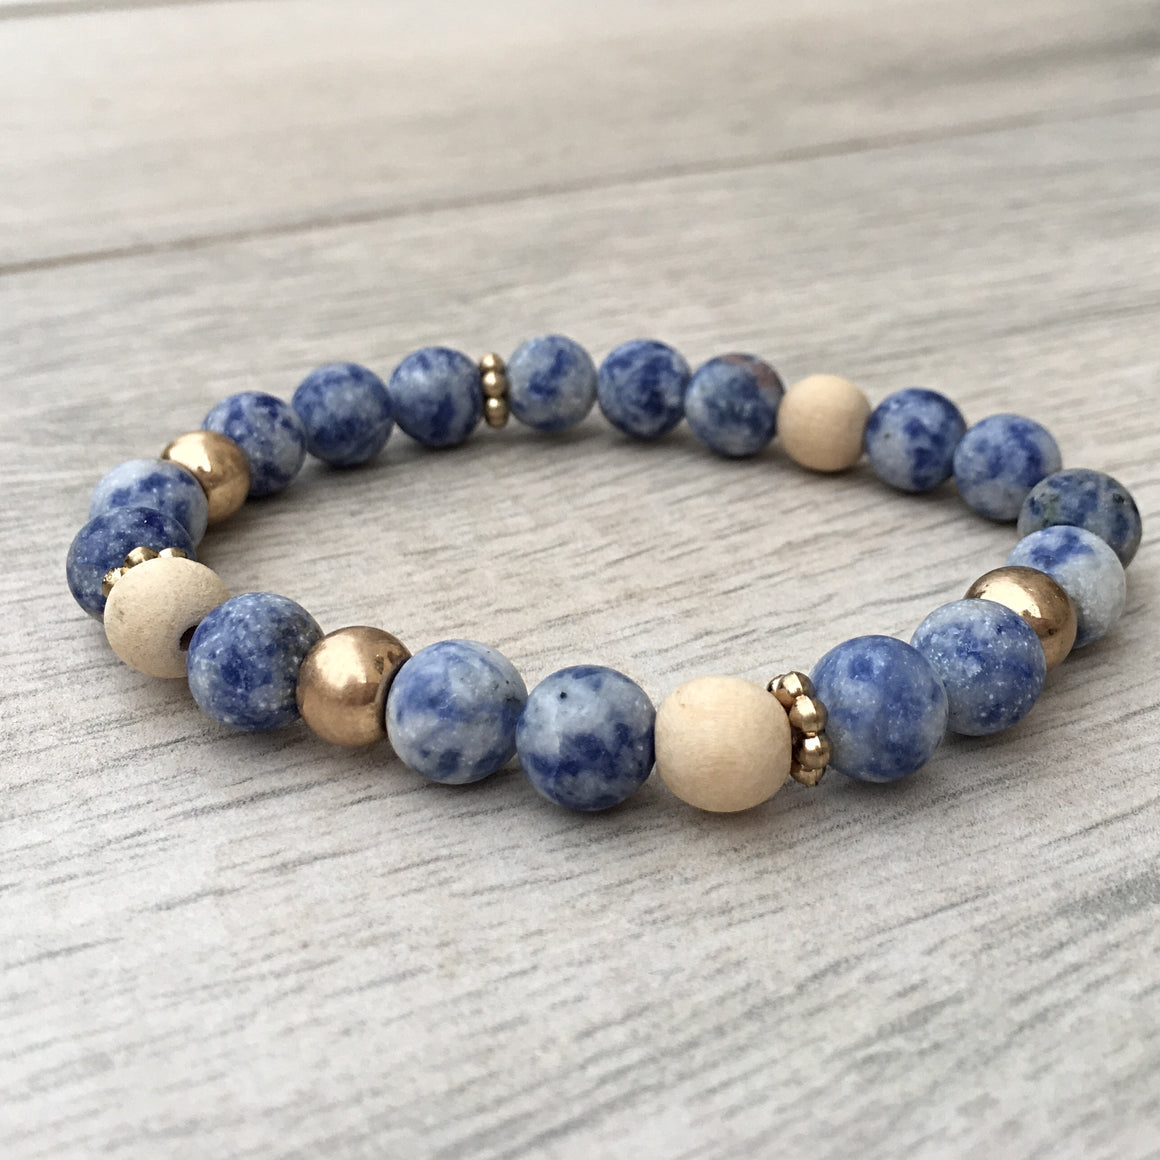 MALI-BLUE BREATHE BEADS